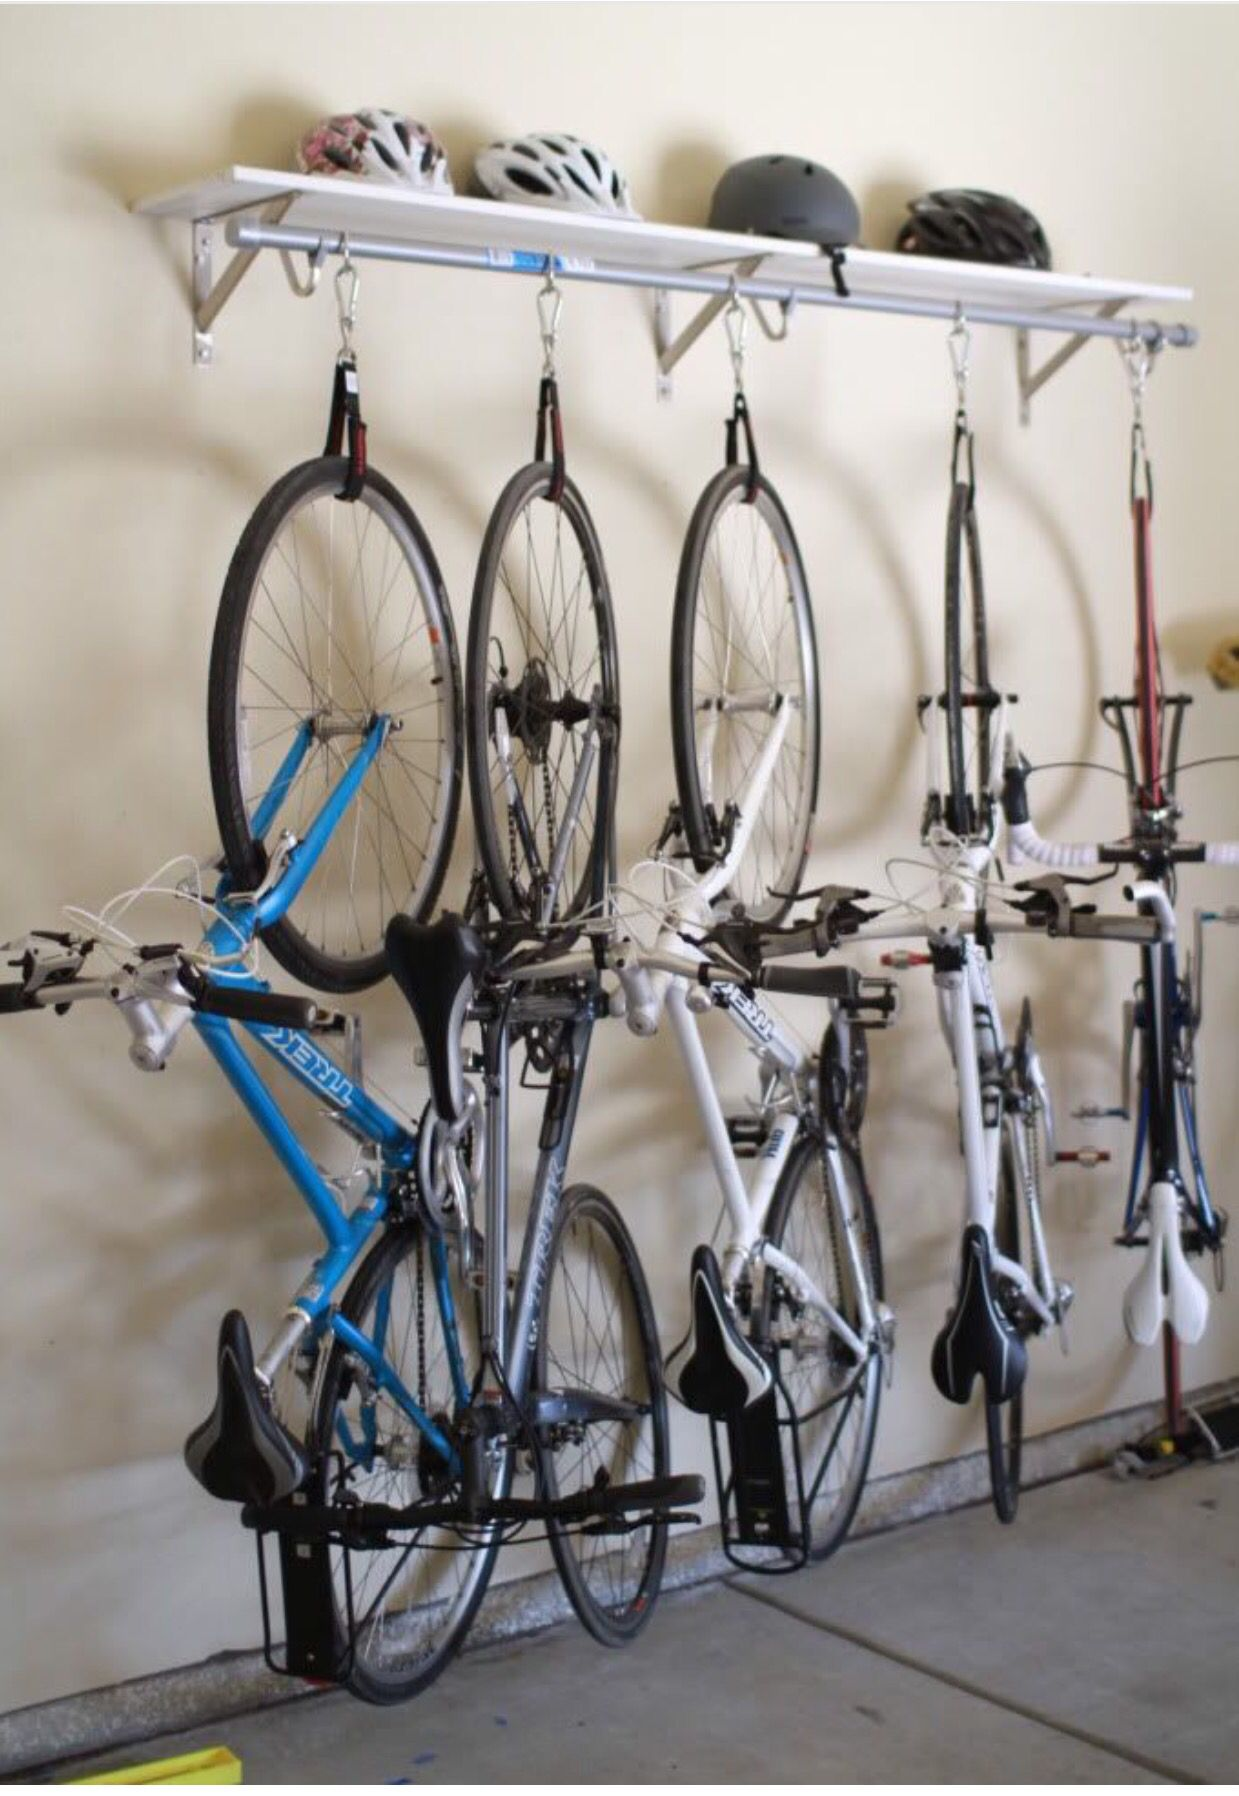 bike storage new house pinterest garage fahrrad und garage ideen. Black Bedroom Furniture Sets. Home Design Ideas